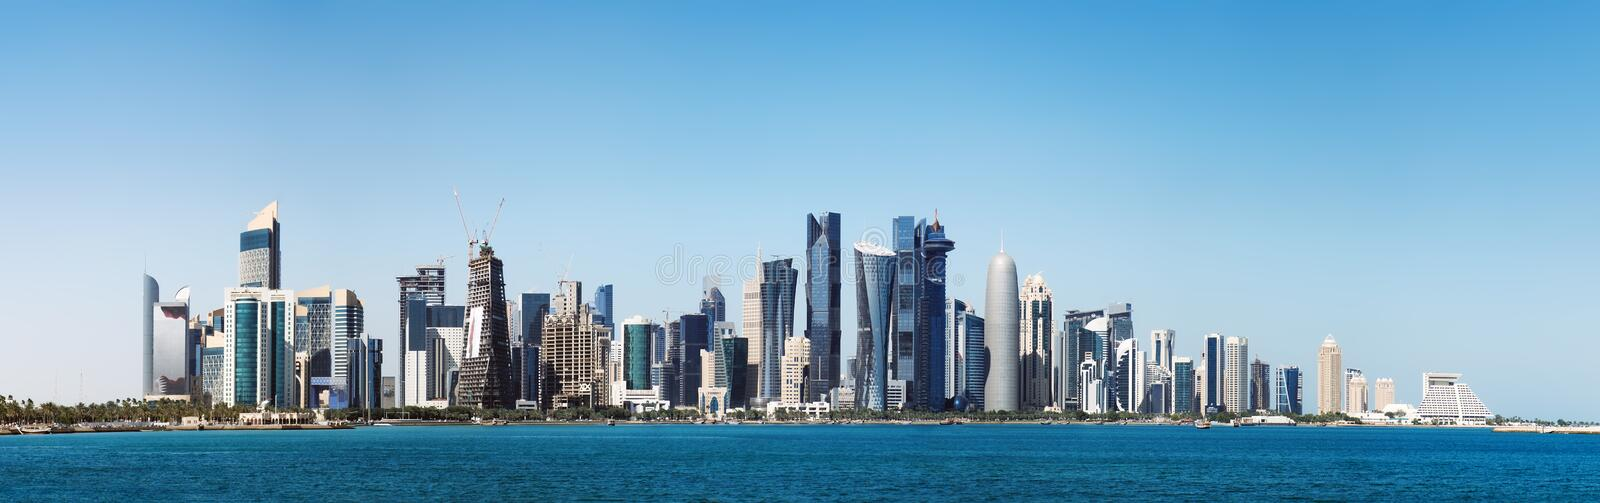 Futuristic skyline of Doha in Qatar royalty free stock image